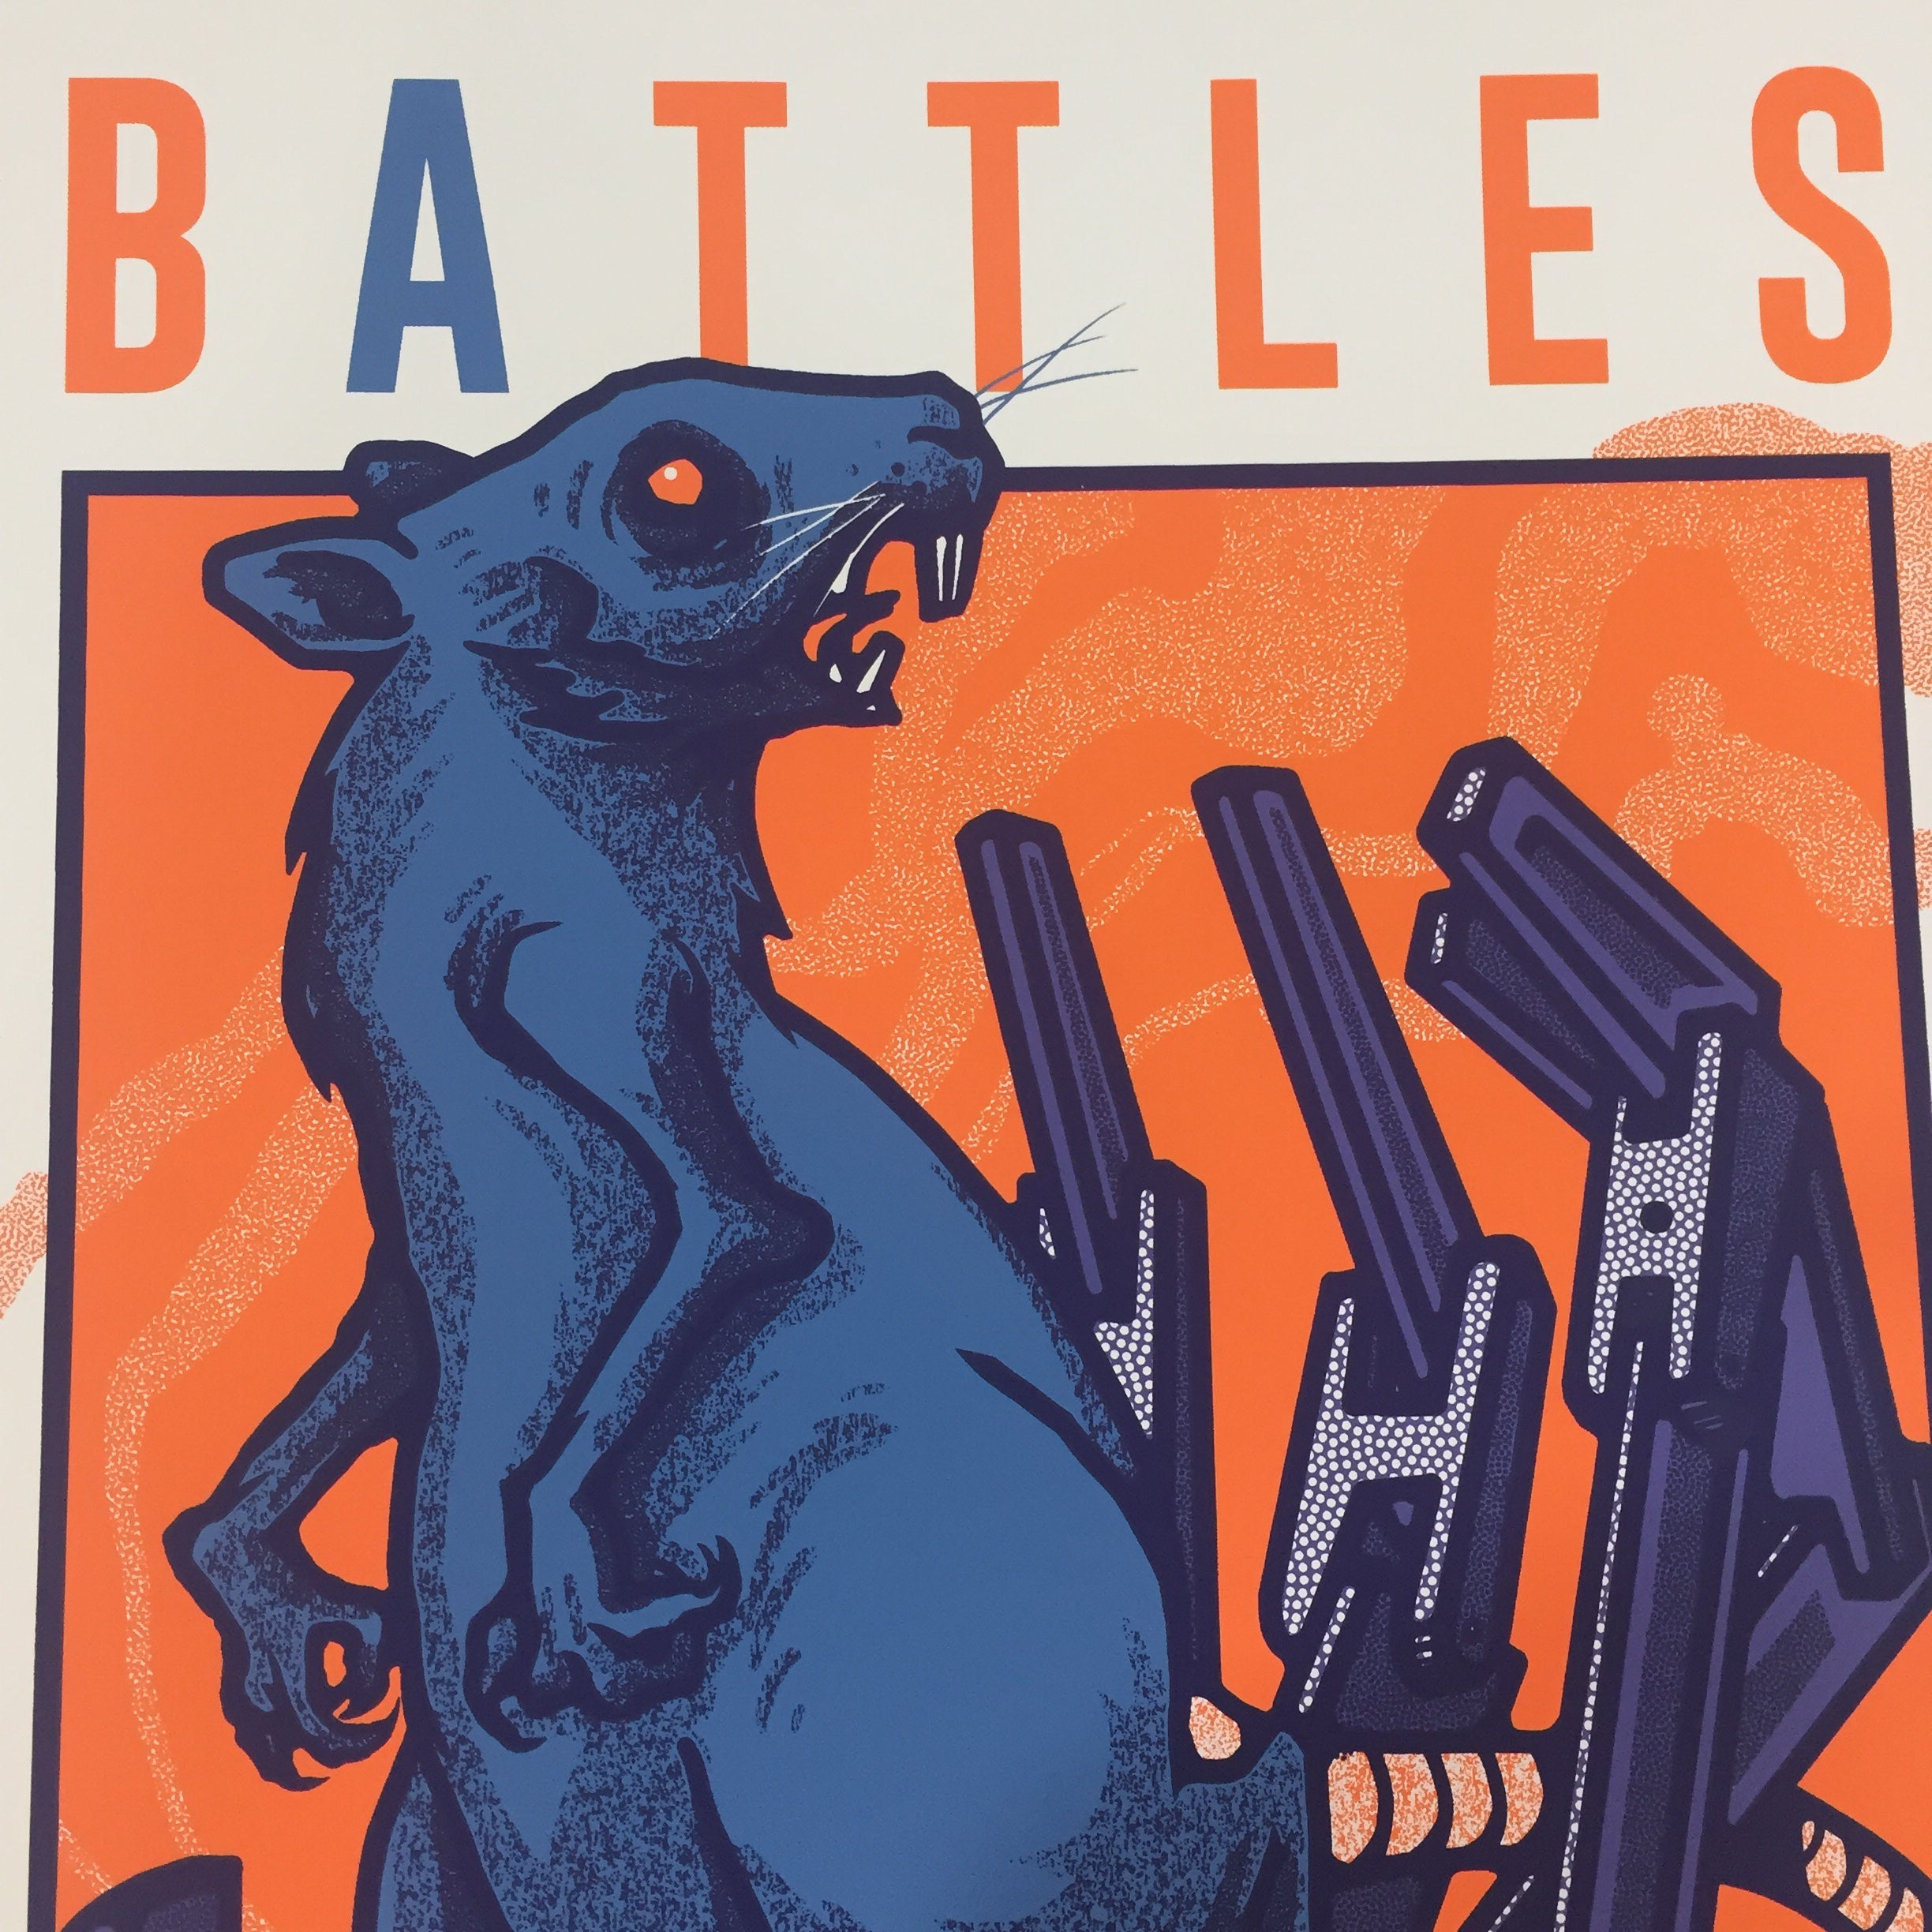 Battles Mexico 2020 Mike Sandoval Gig Poster